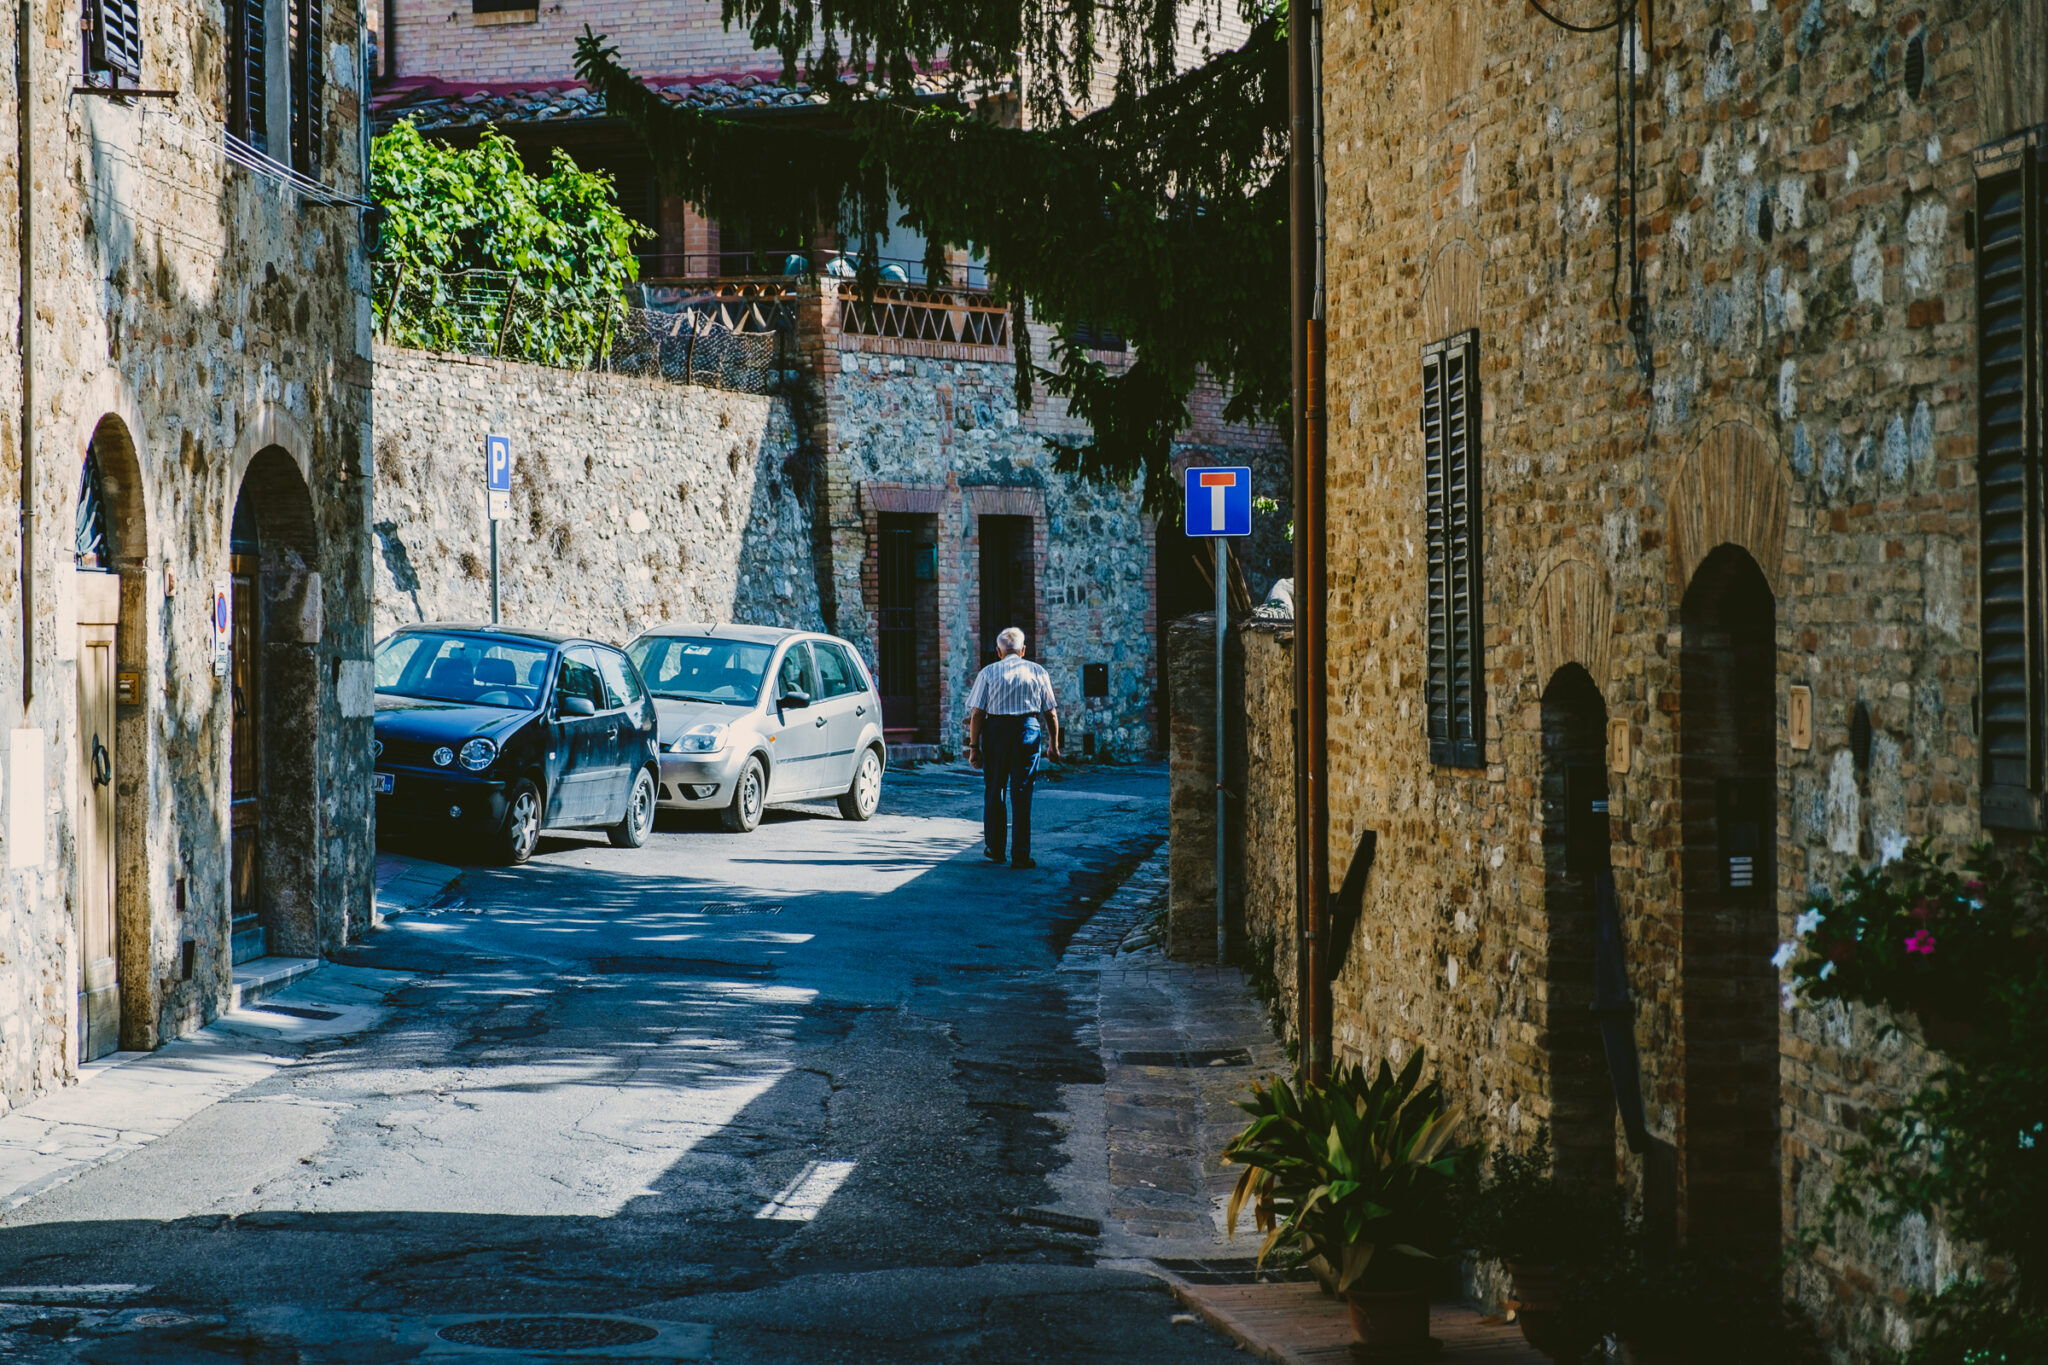 camera.lens: fujifilm fujinon xf 16-55mm f2.8 r lm wr, camera: fujifilm x-t2, picture.aperture: 3.2, picture.exposure: 1/500sec, picture.iso: 100, picture.year: 2017, place.country: italy, place.location: san_gimignano